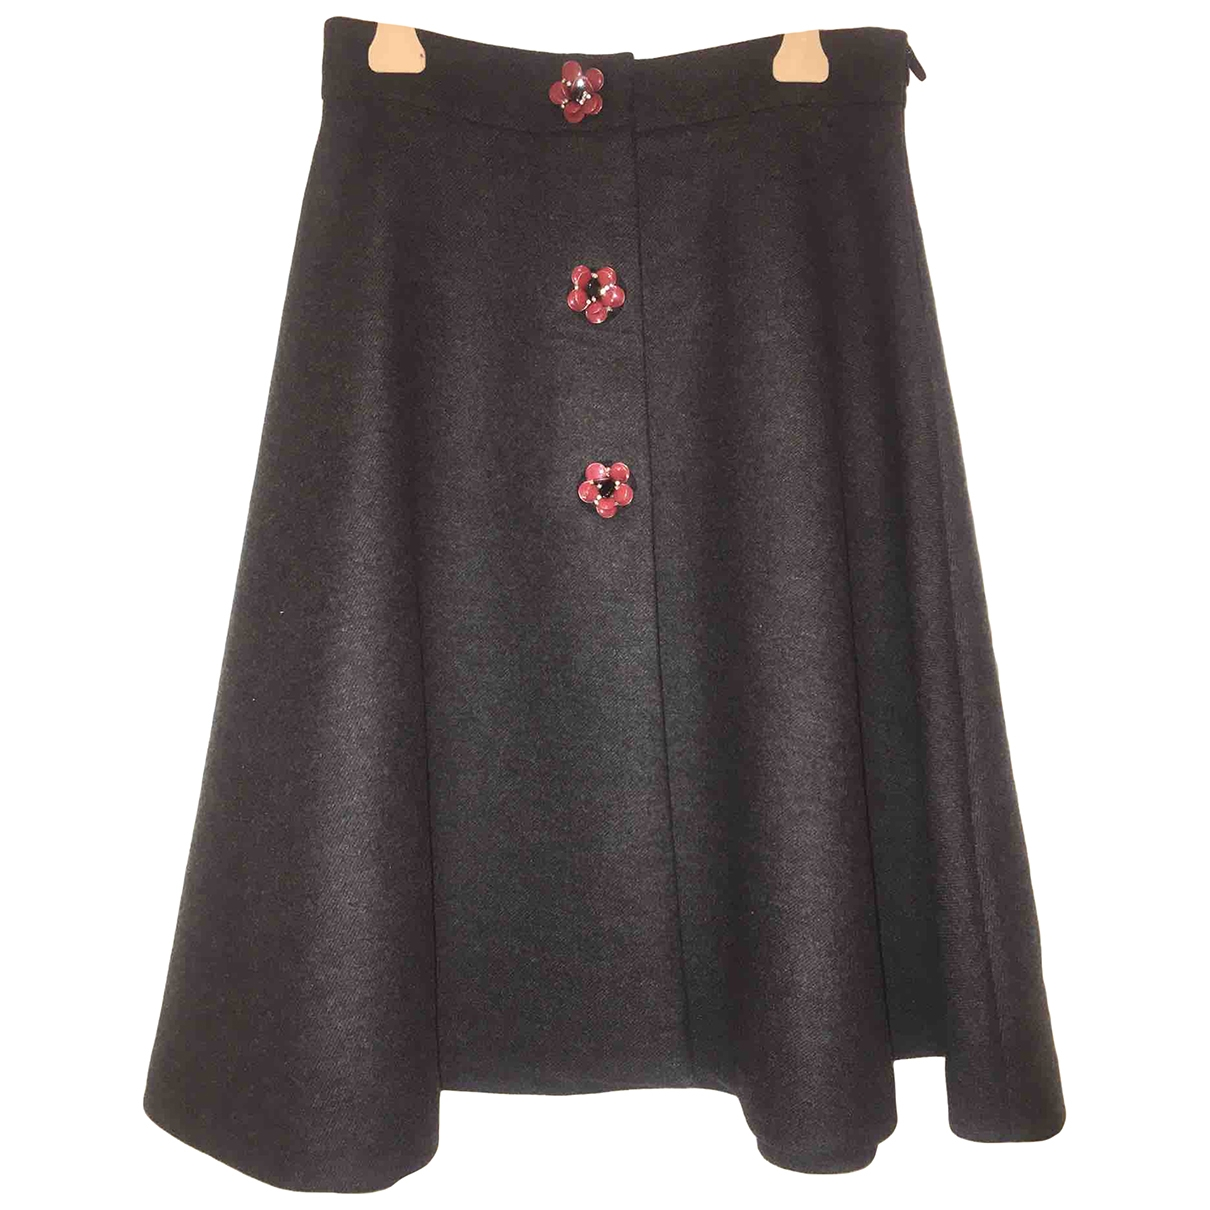 Miu Miu \N Grey Wool skirt for Women 44 IT